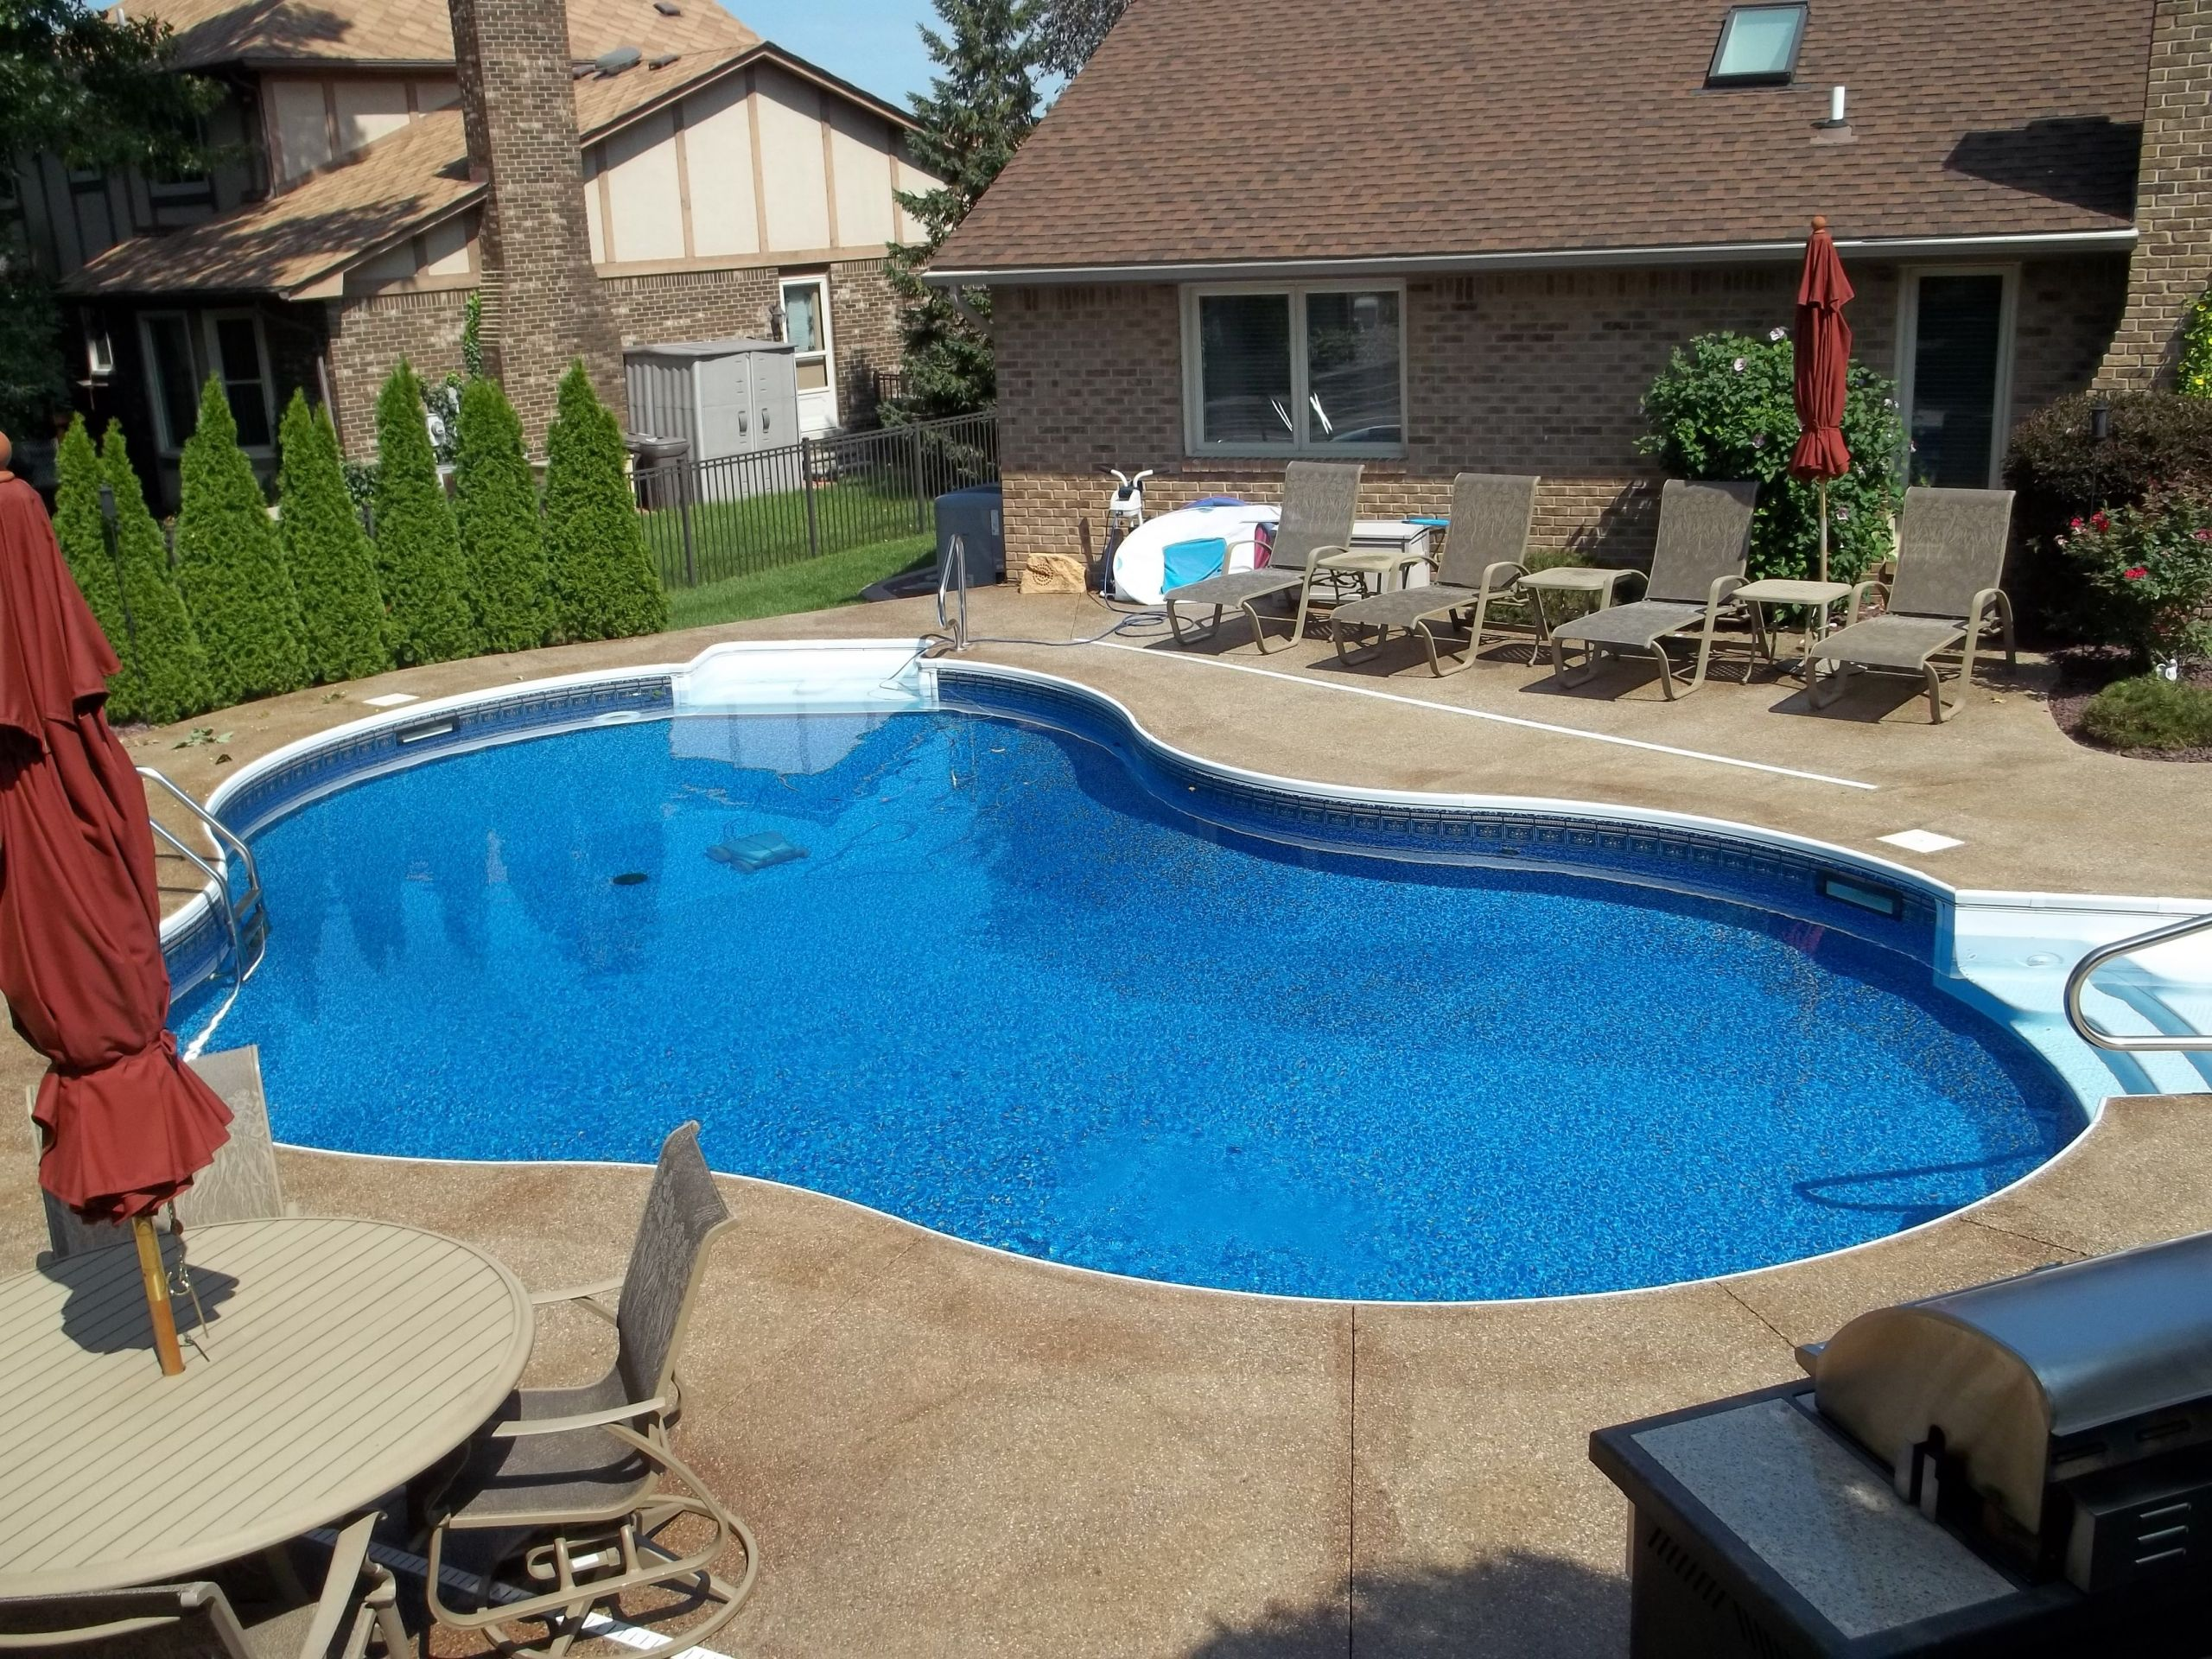 Pool Images Backyard  Backyard Pool Design with Mesmerizing Effect for Your Home